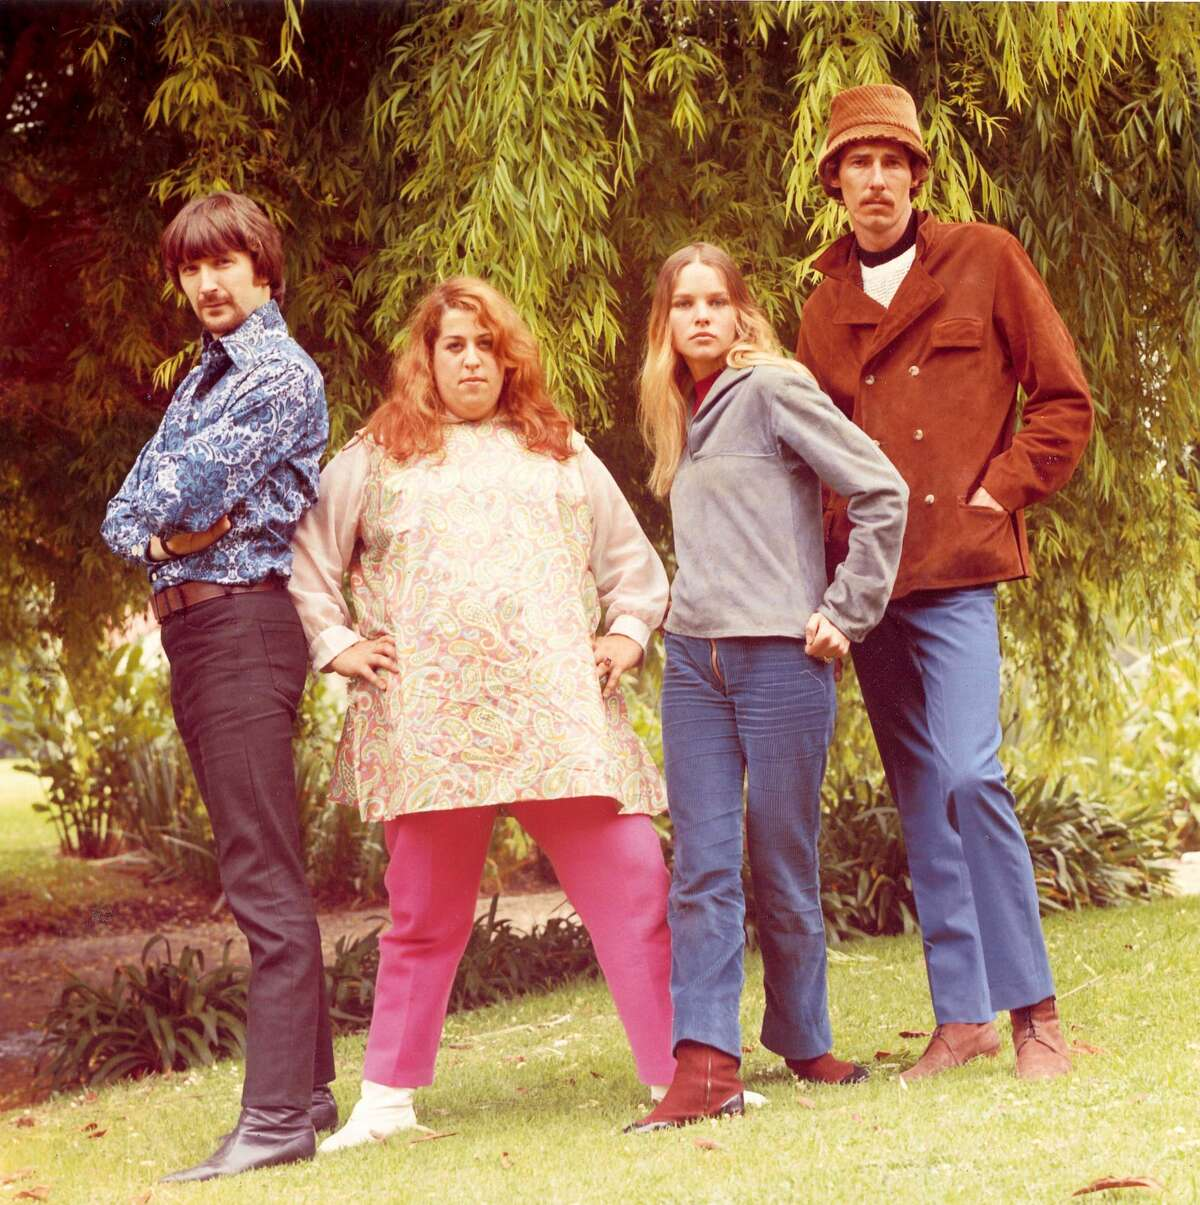 The Mamas and the Papas: California Dreamin' One of the first